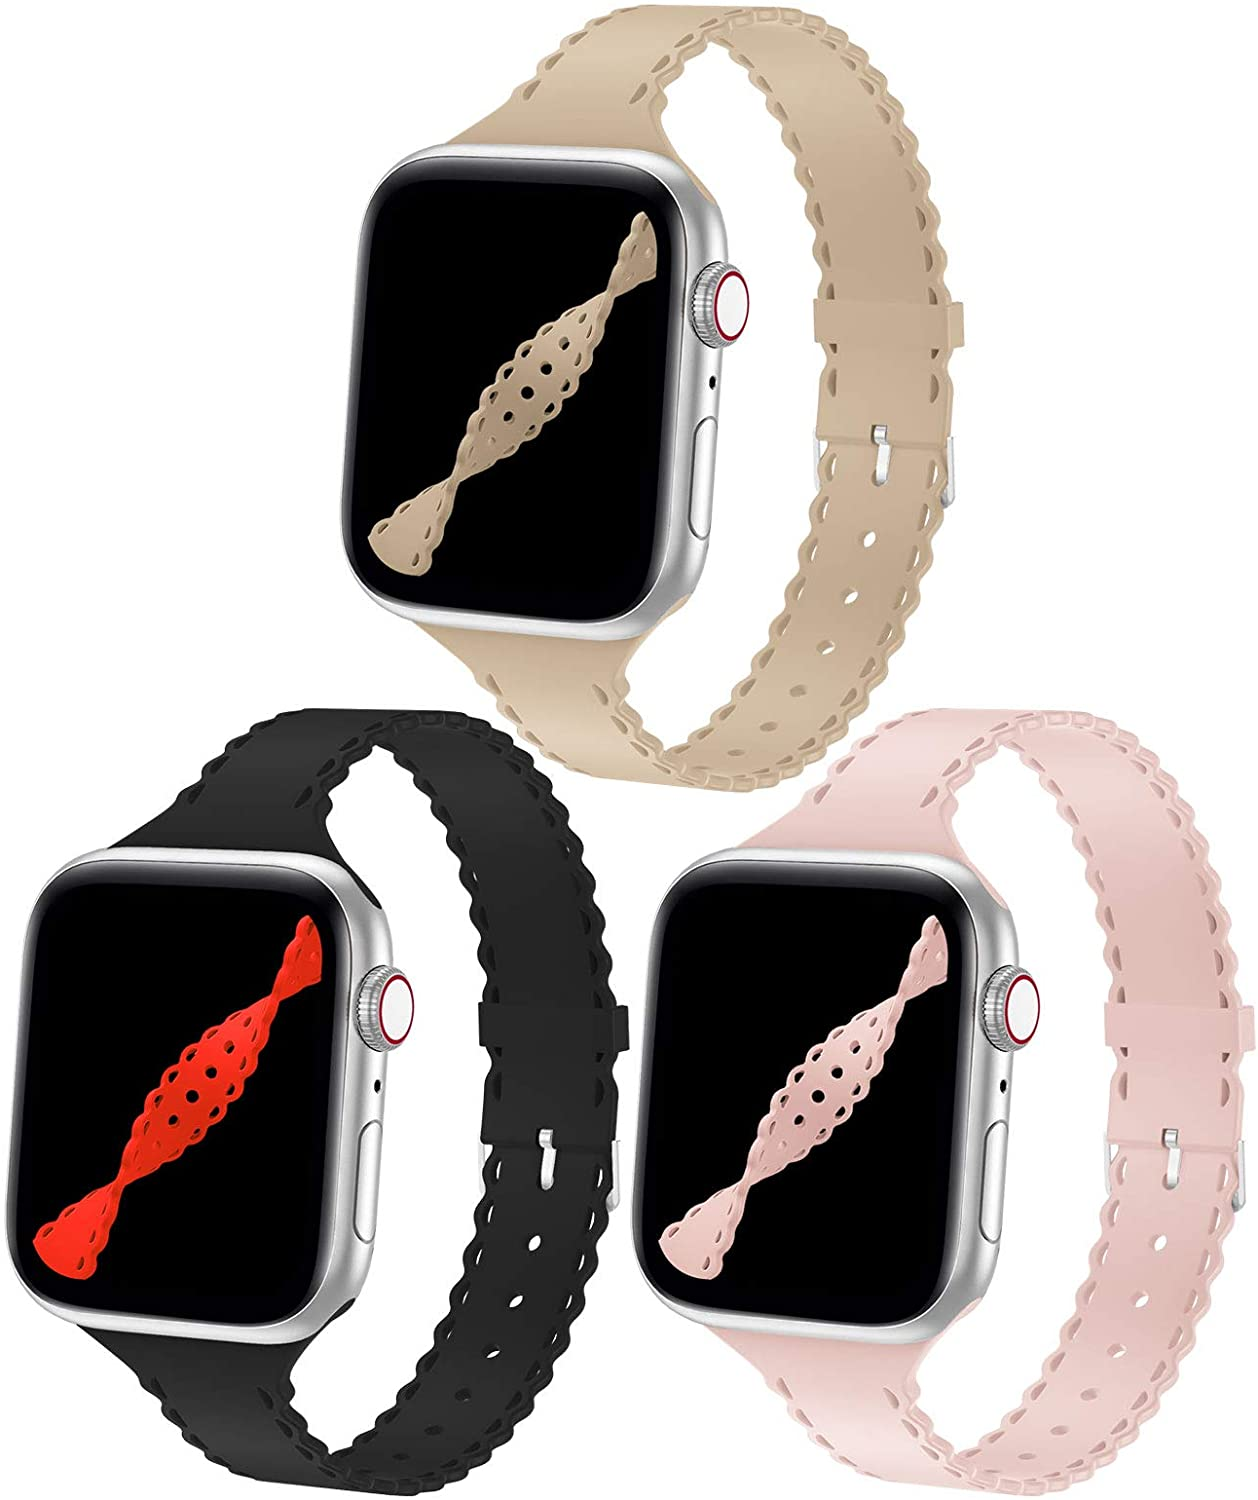 YAXIN 3 Pack Watch Bands Compatible with Apple Watch Band 38mm 40mm Women Series 3 Narrow Slim iWatch Bands Sport Soft Silicone Thin Wristband Strap Compatible for iWatch Series 6 5 4 2 1 SE